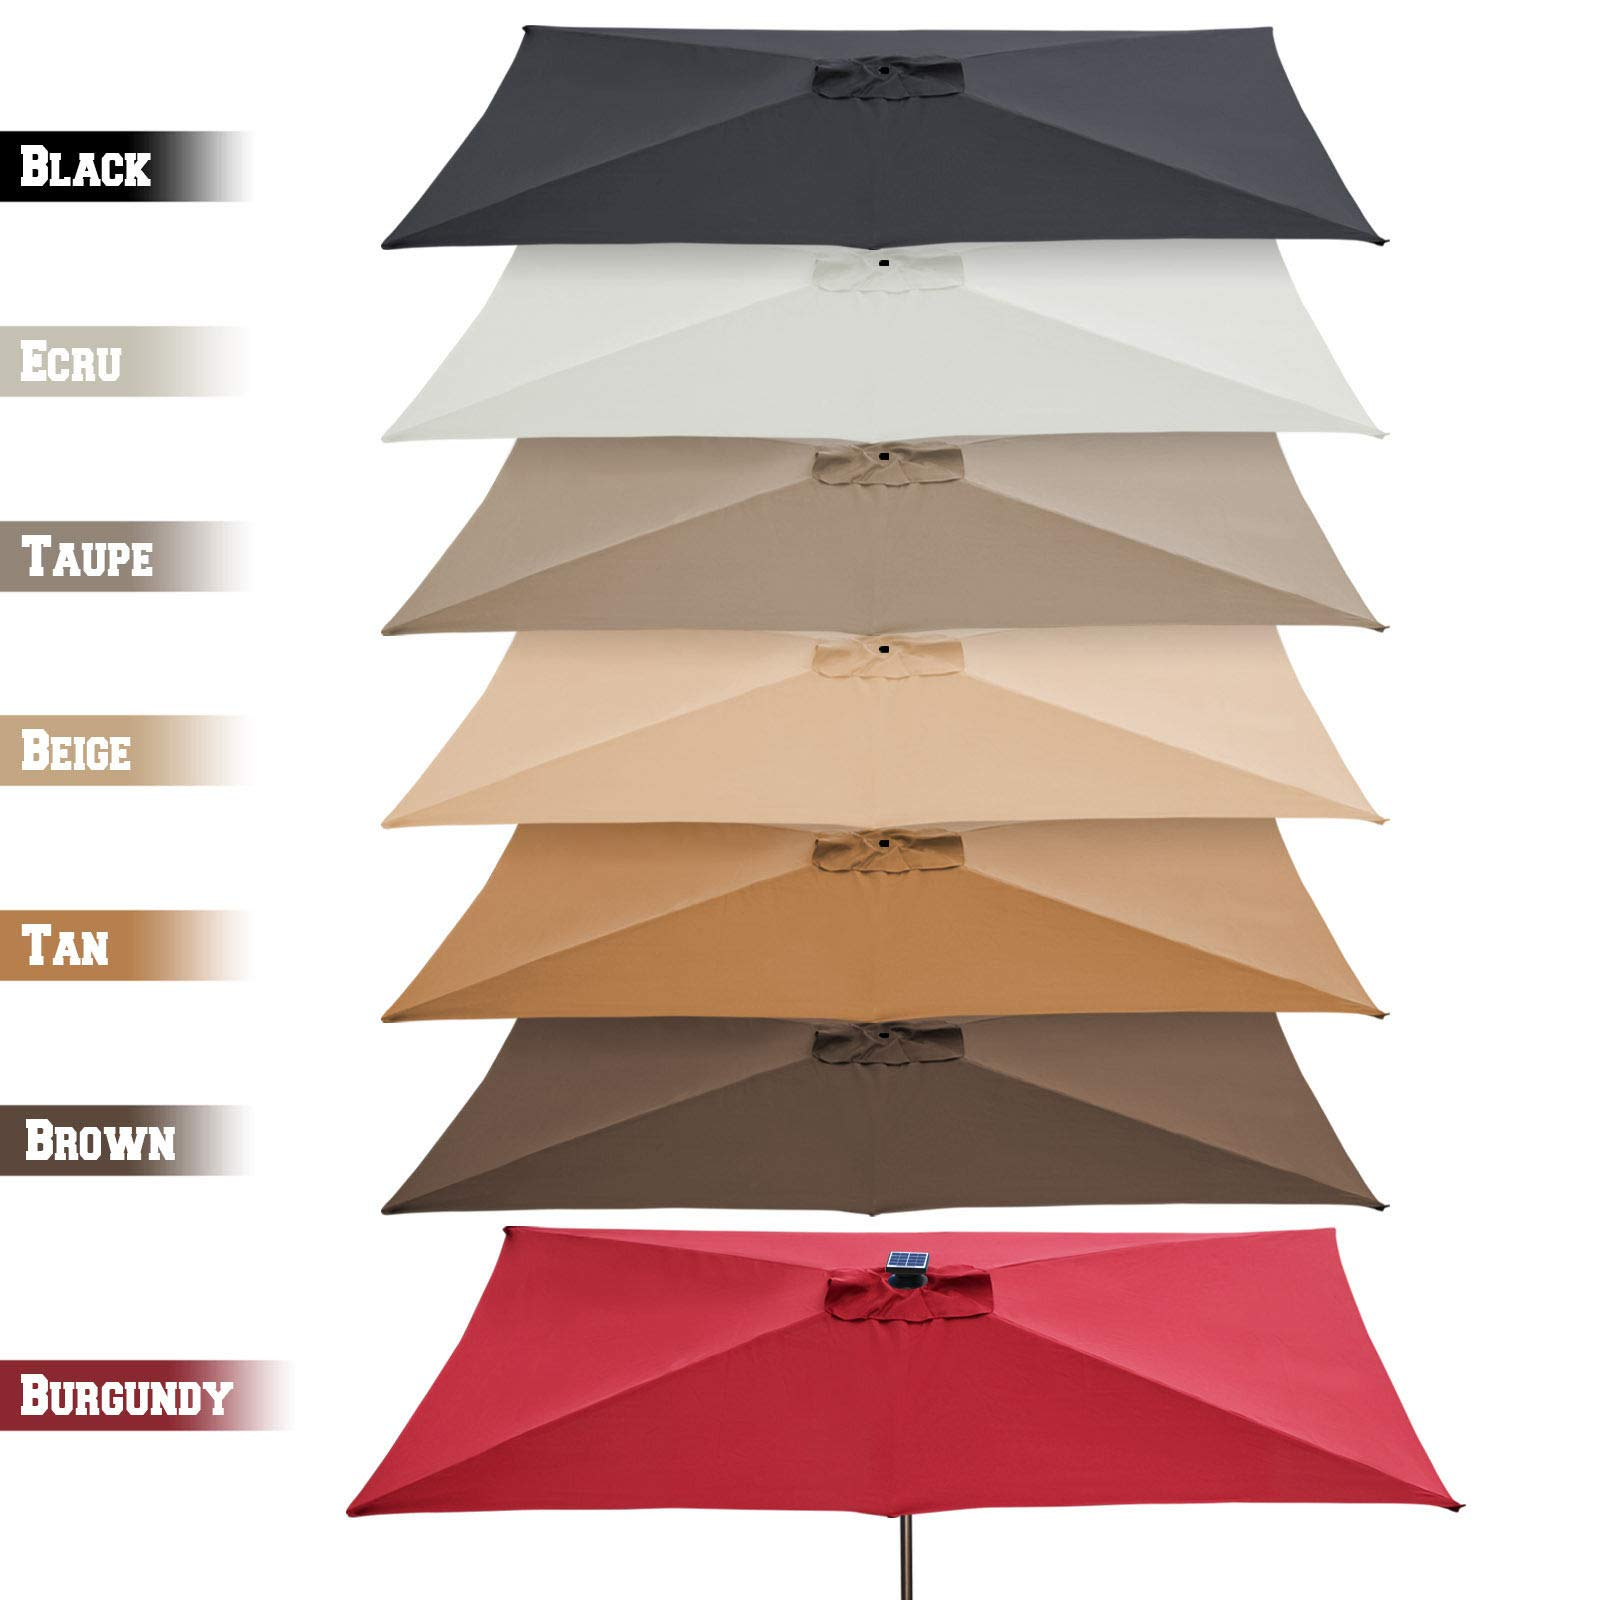 BenefitUSA 10'x6.5' Outdoor Patio Umbrella Replacement Canopy 6-Rib Parasol Top Cover (Taupe) by Benefit-USA